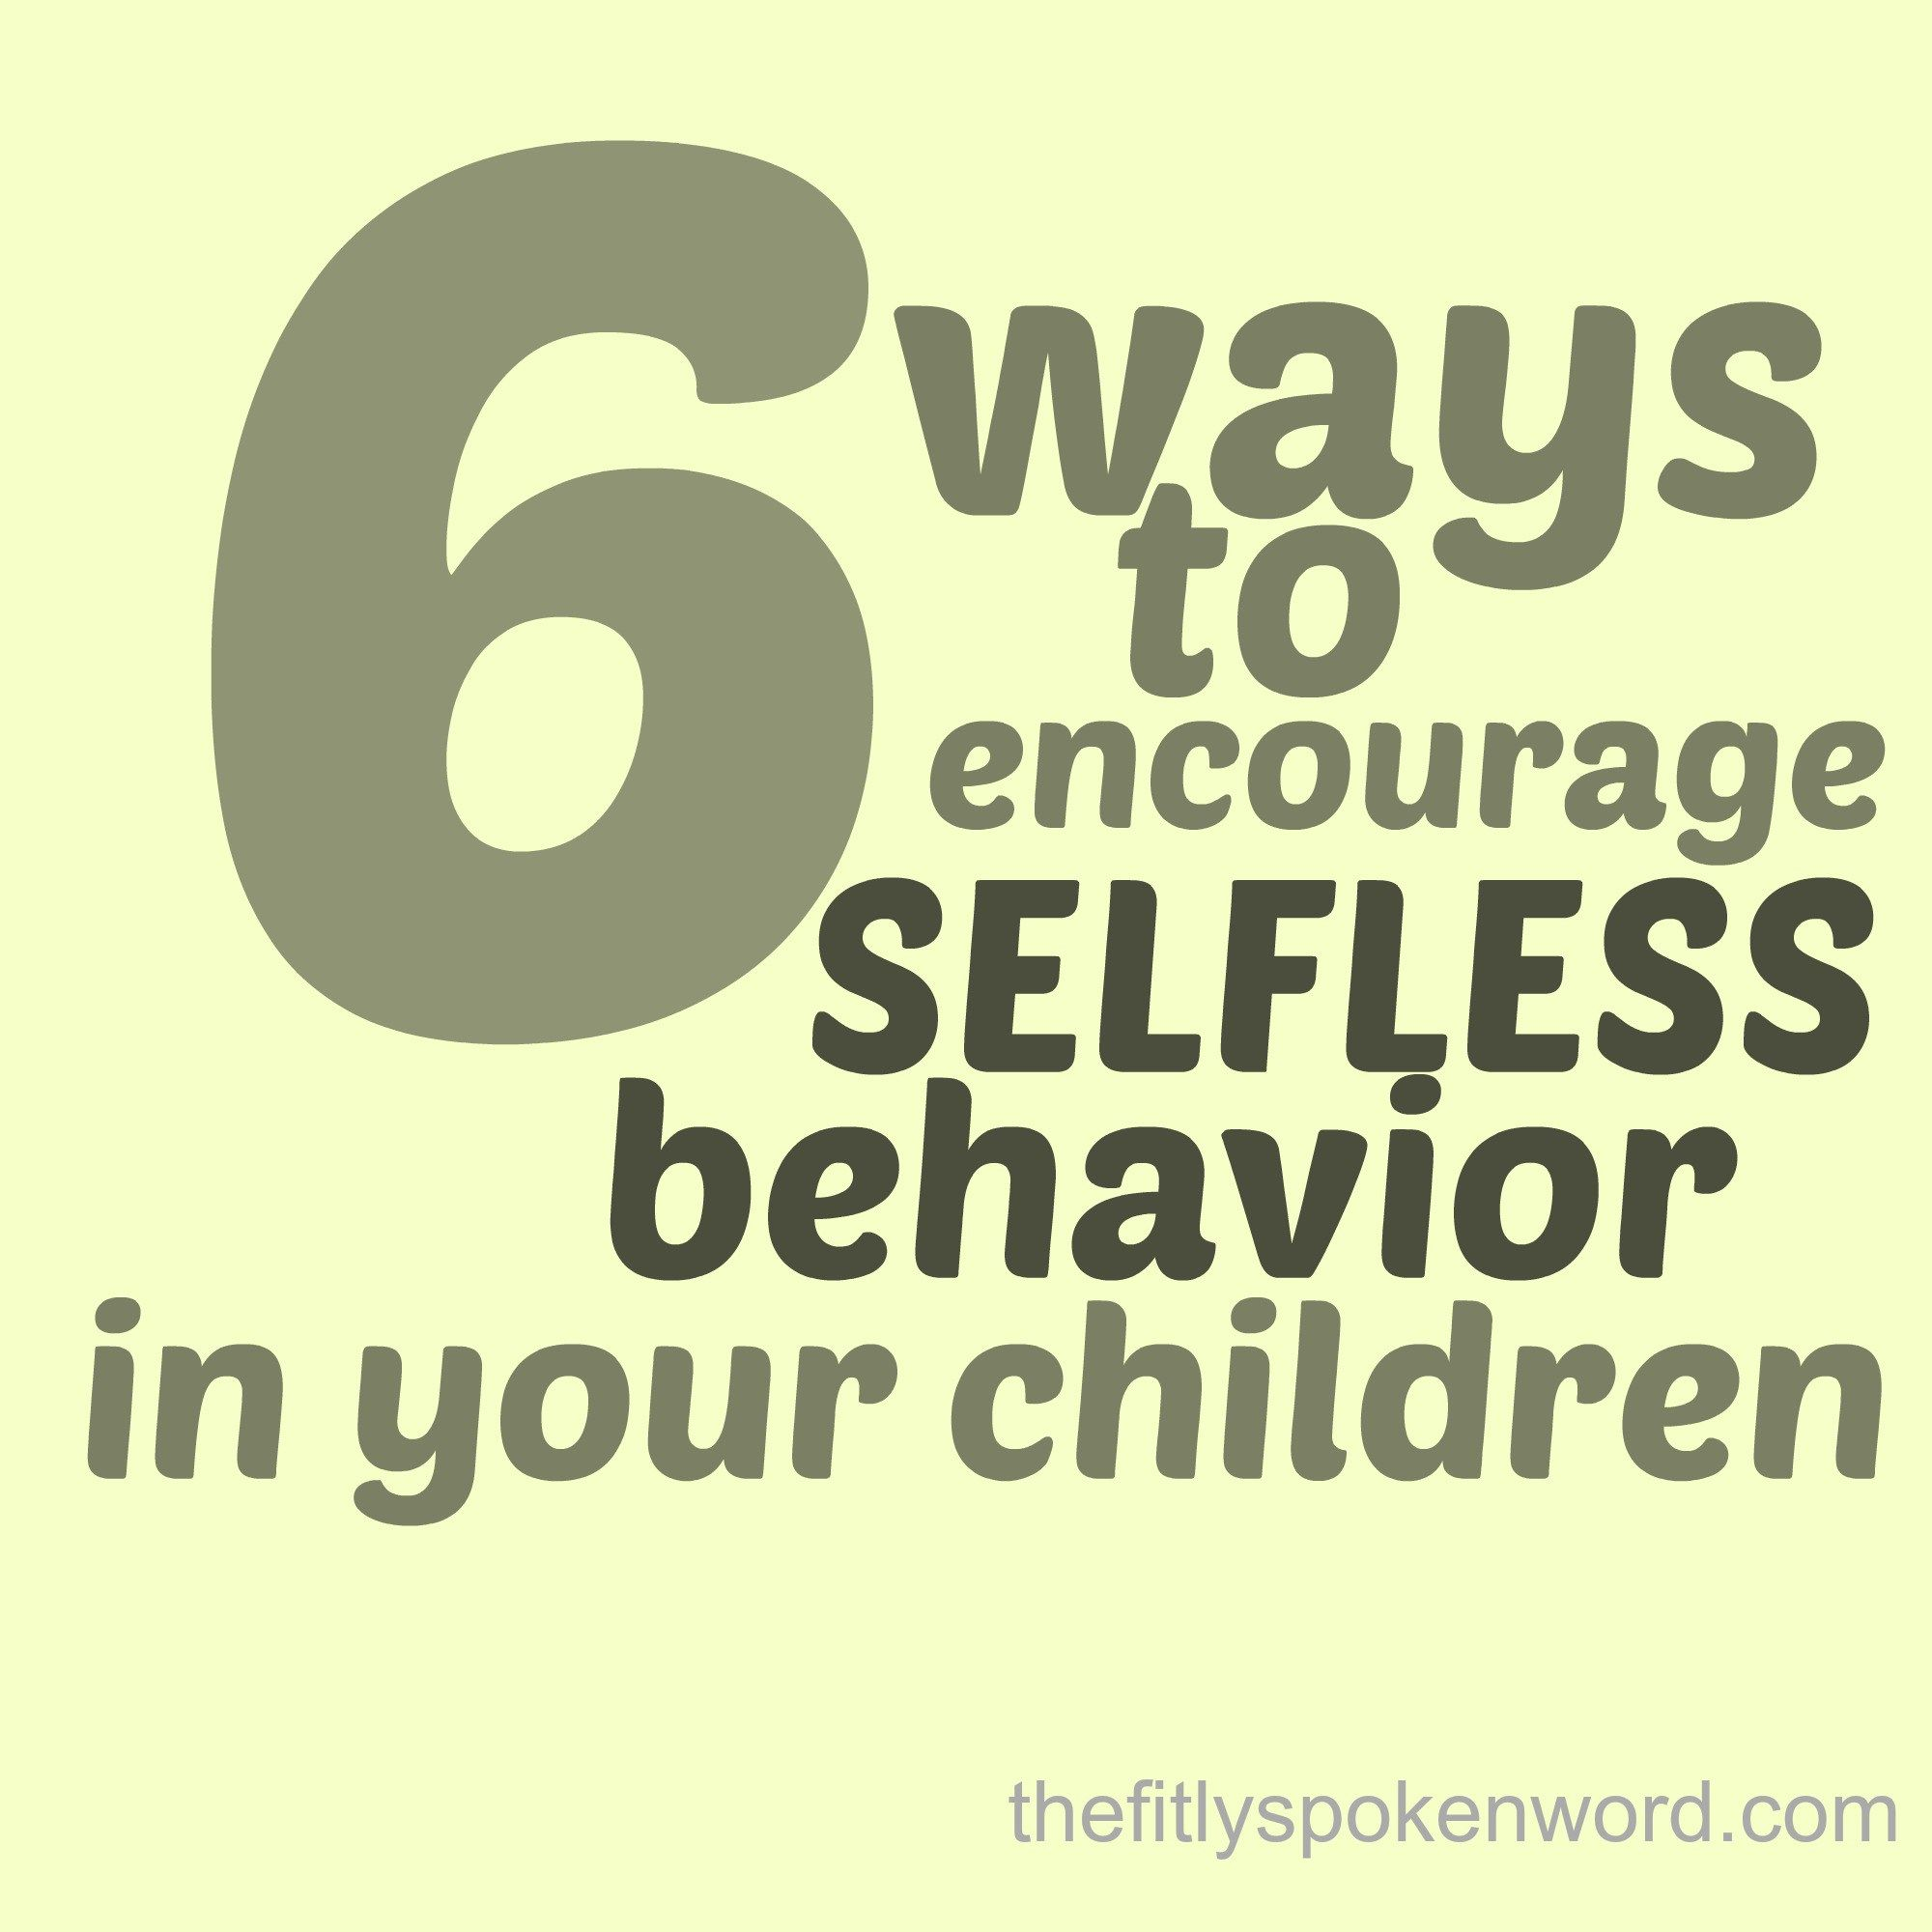 6 Ways To Help Your Child Overcome Selfishness Including